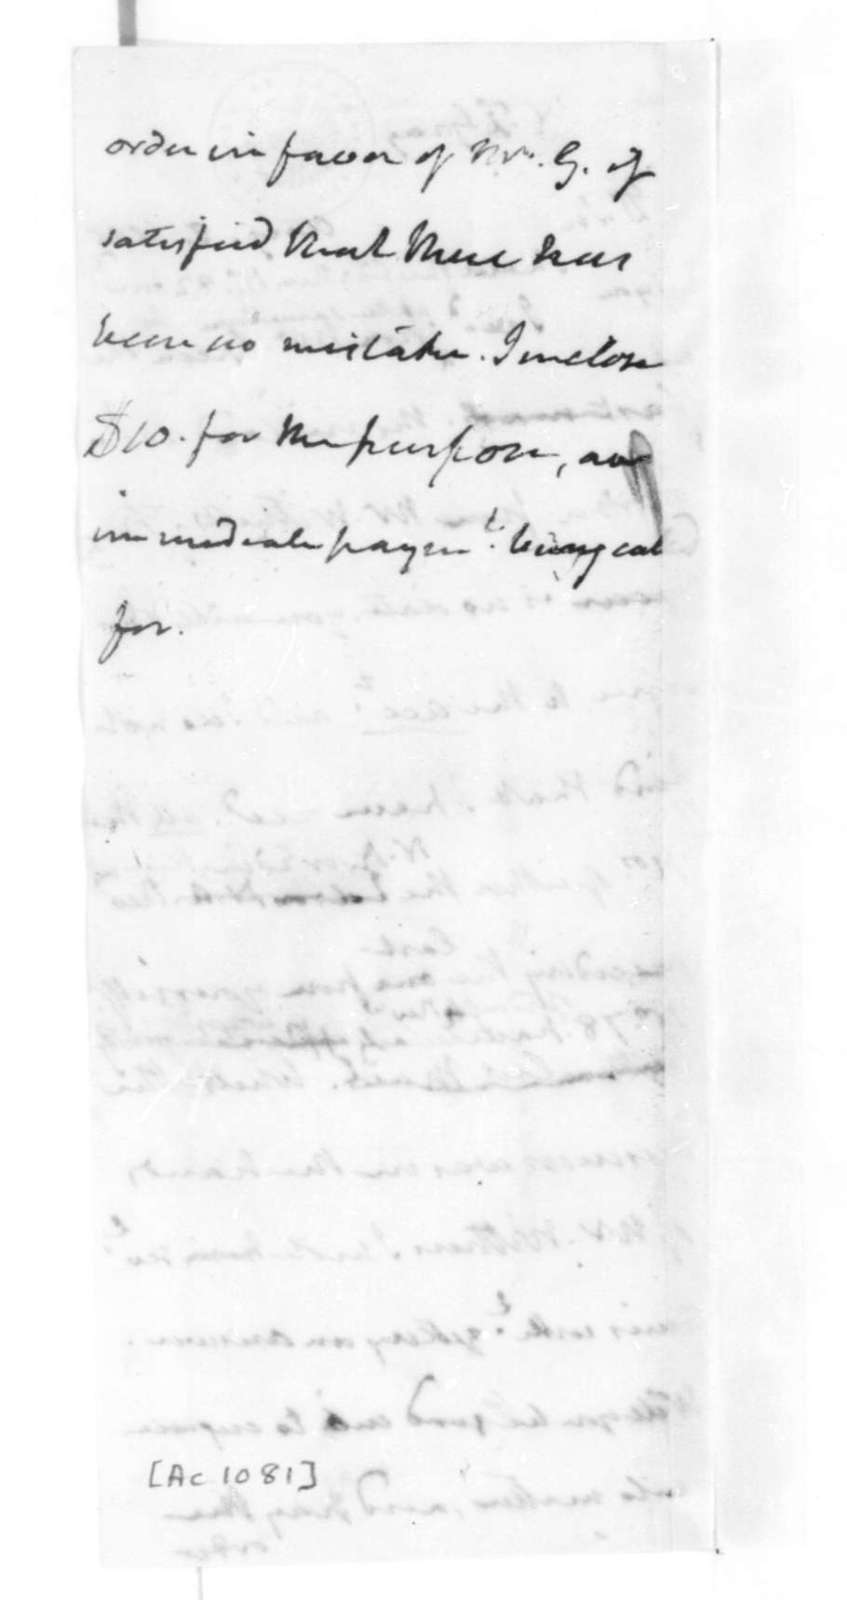 James Madison to William F. Gray, August 8, 1825.